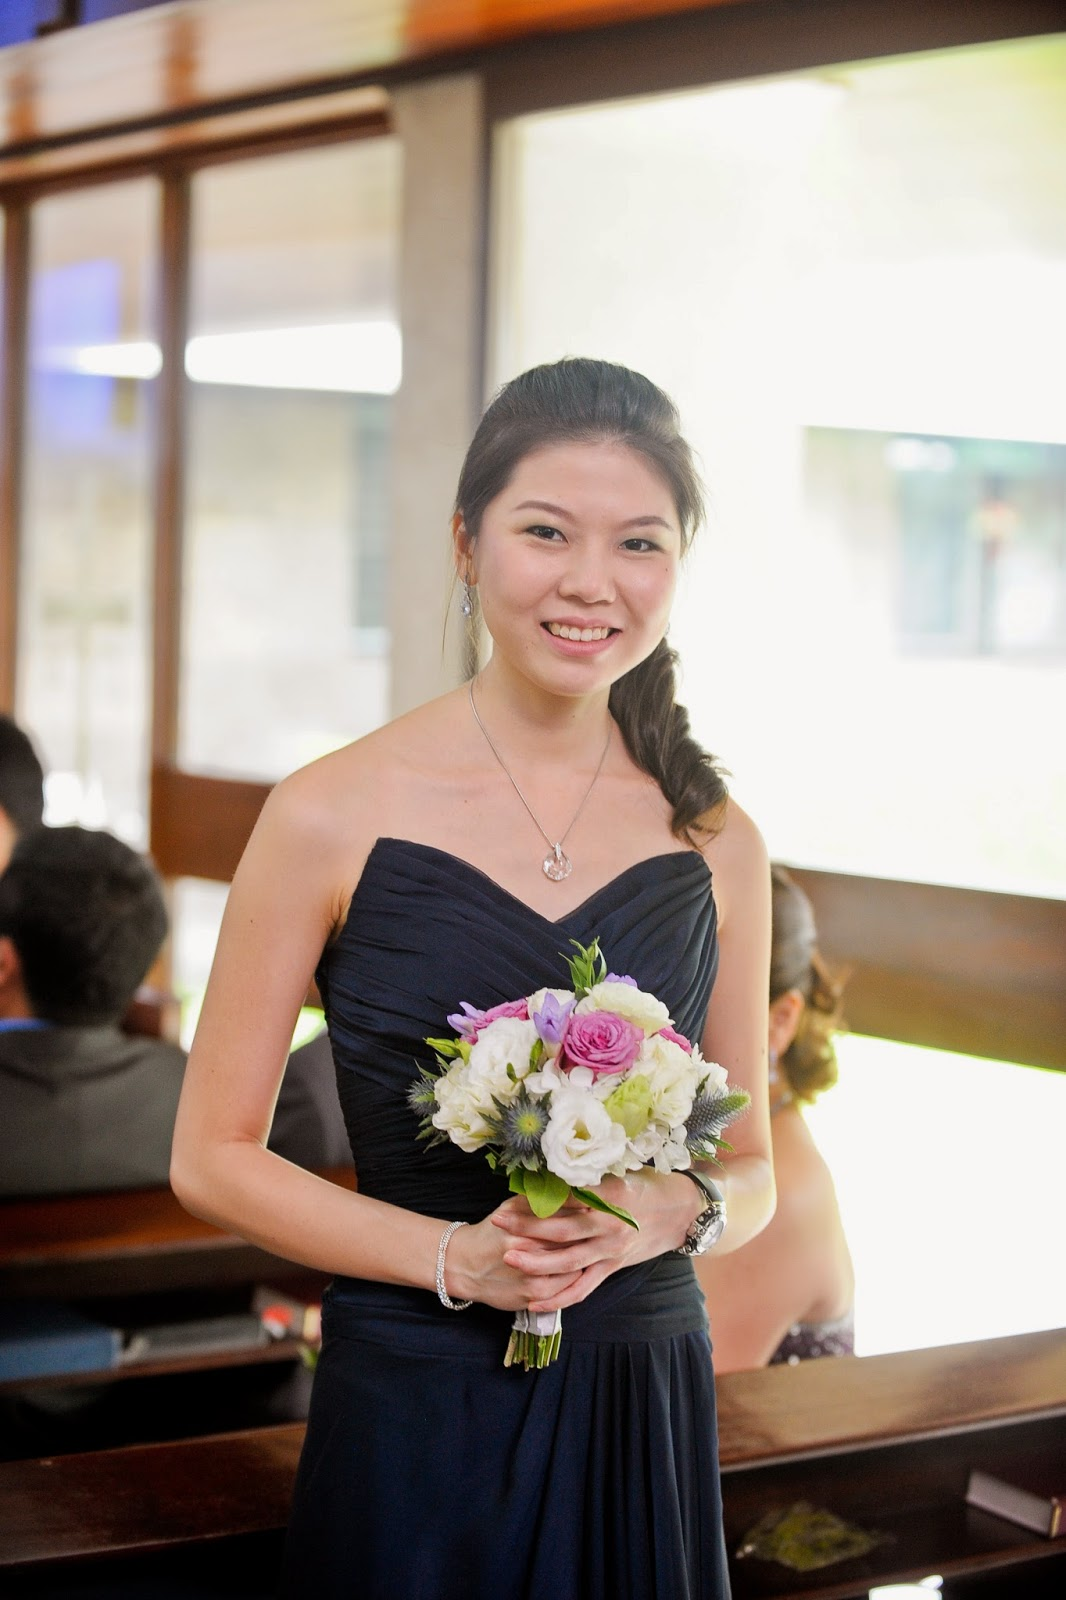 Jobelle at My Wedding in Manila, Philippines